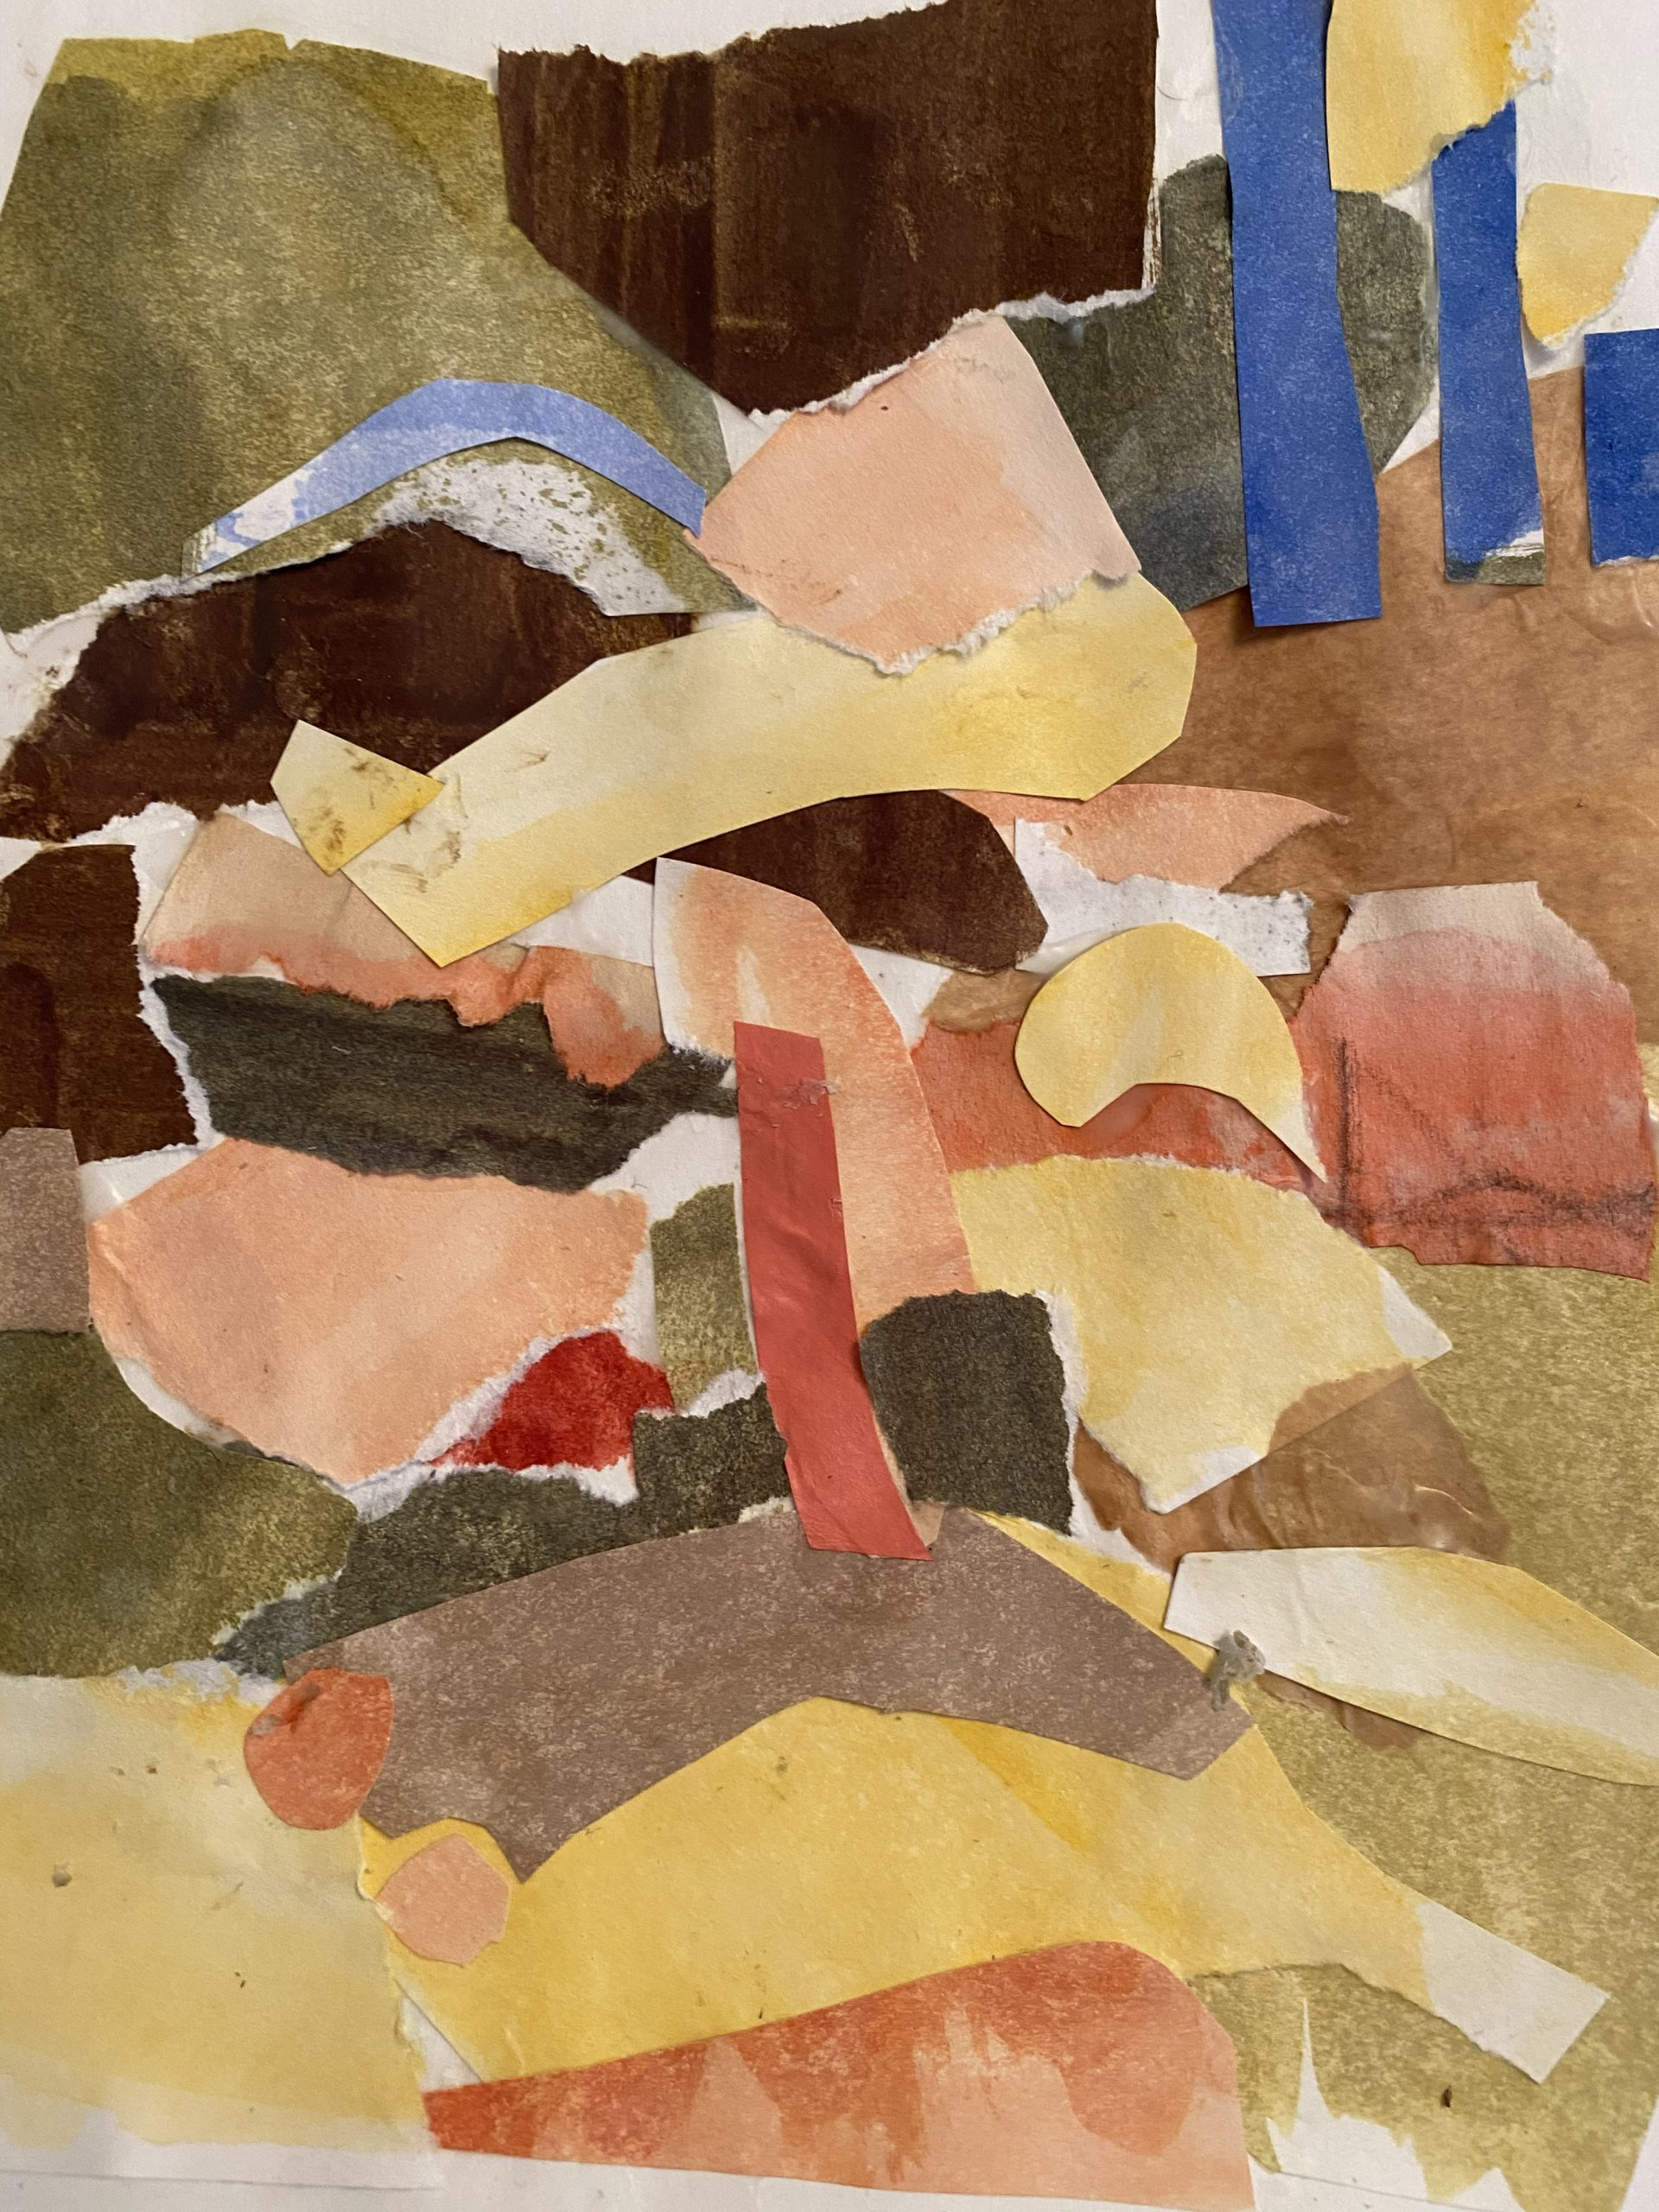 Collage in golden hues by Betty Canick at Waltham Open Studios